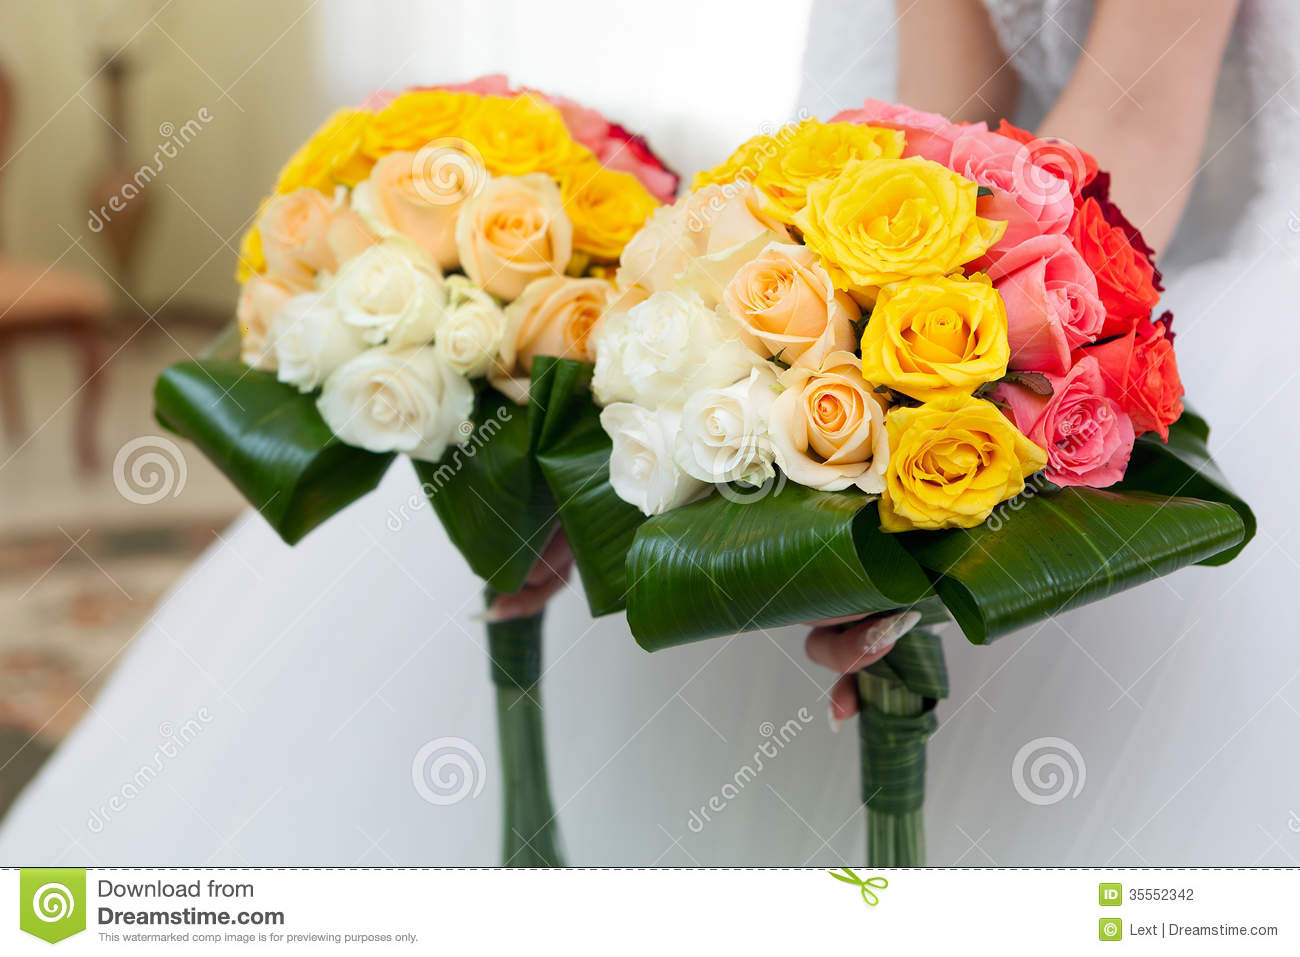 Wedding Bouquet From Flowers In Hands Of The Bride. Stock Photo ...